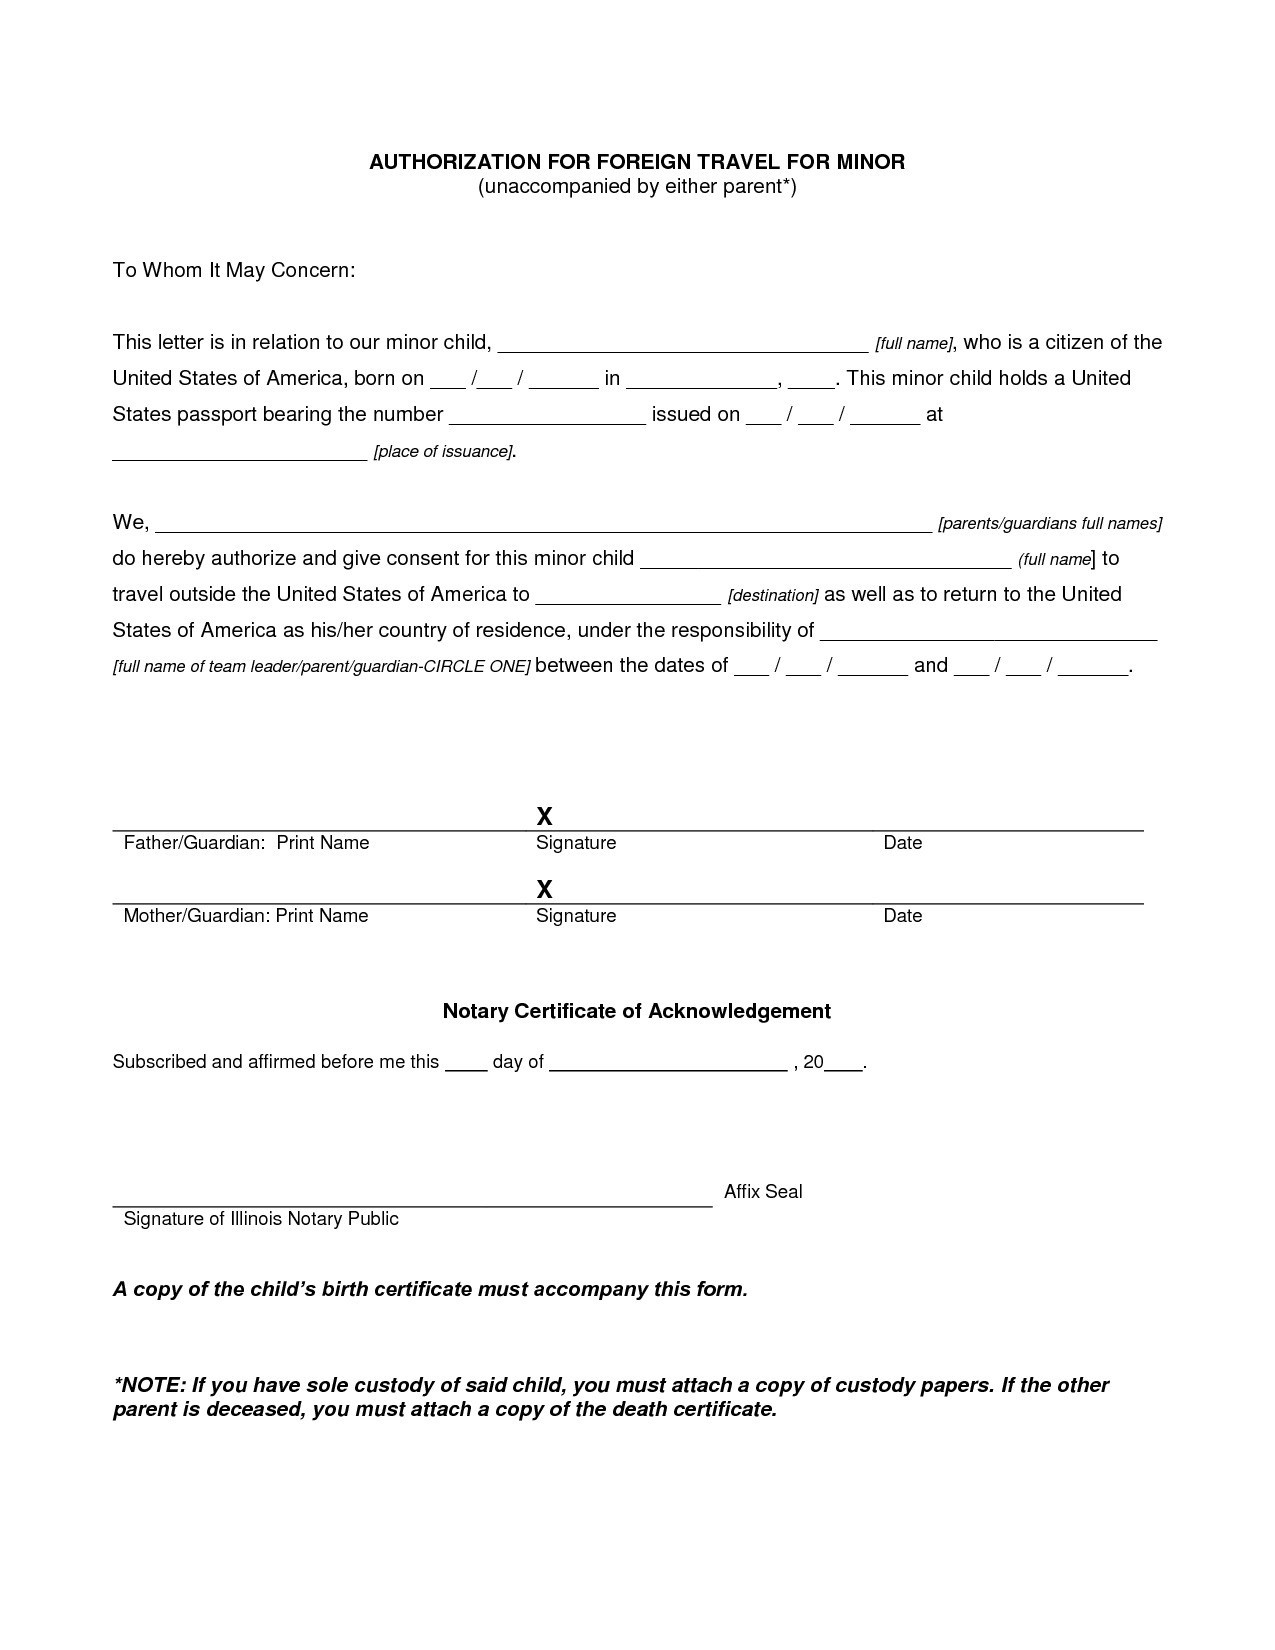 Sample Consent Letter For Children Travelling Abroad With One Parent Awesome Child Travel Consent Letter Template Examples